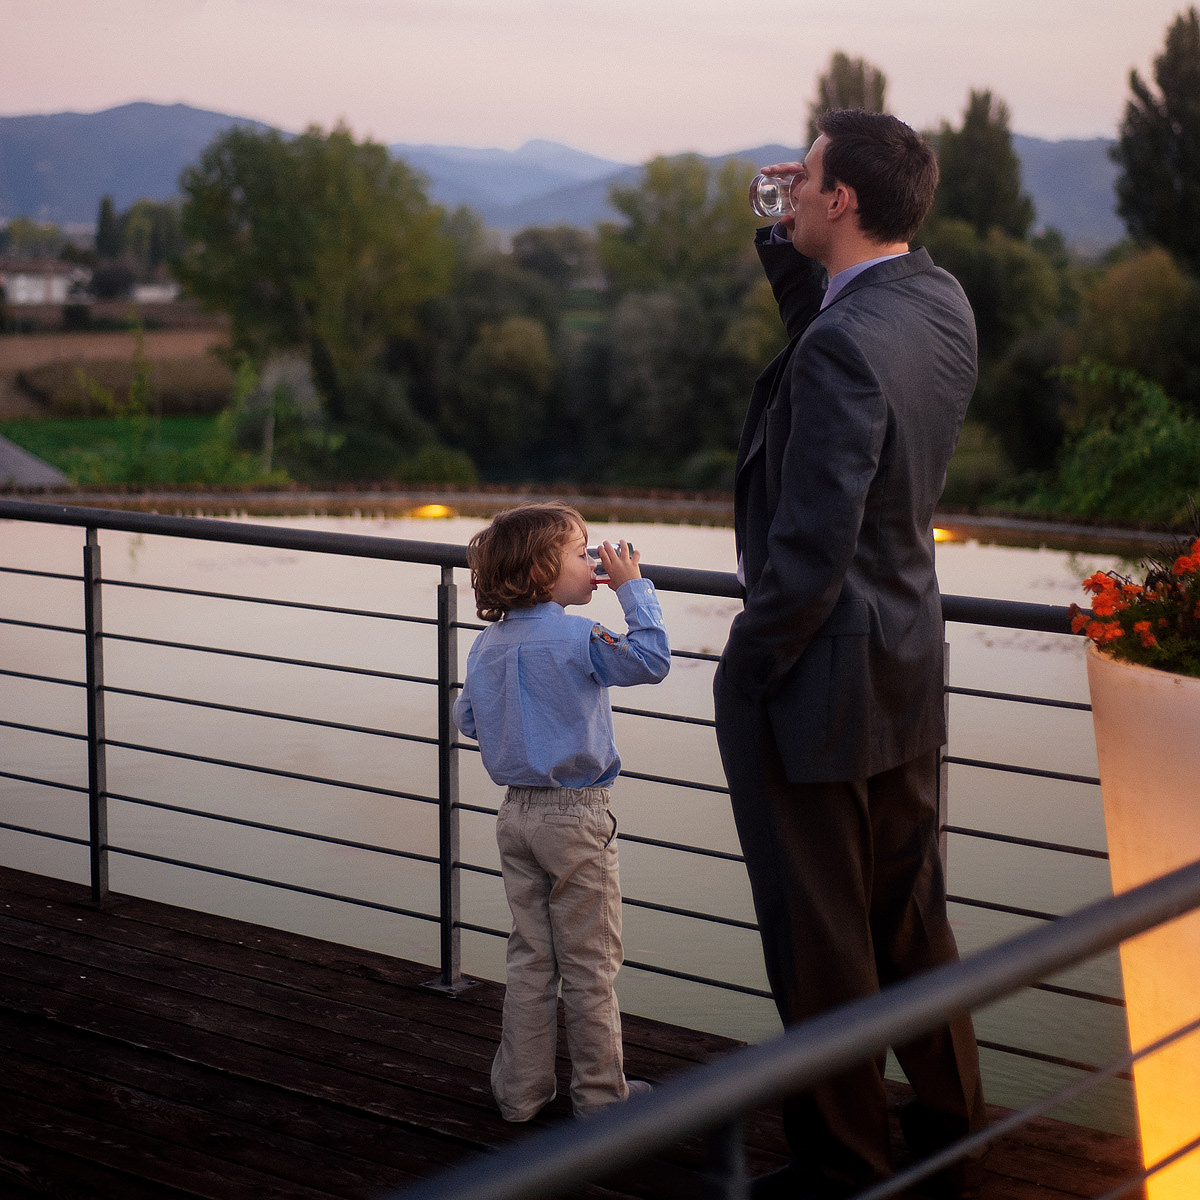 054b destination wedding photography rieti italy father and son synchronized drinking